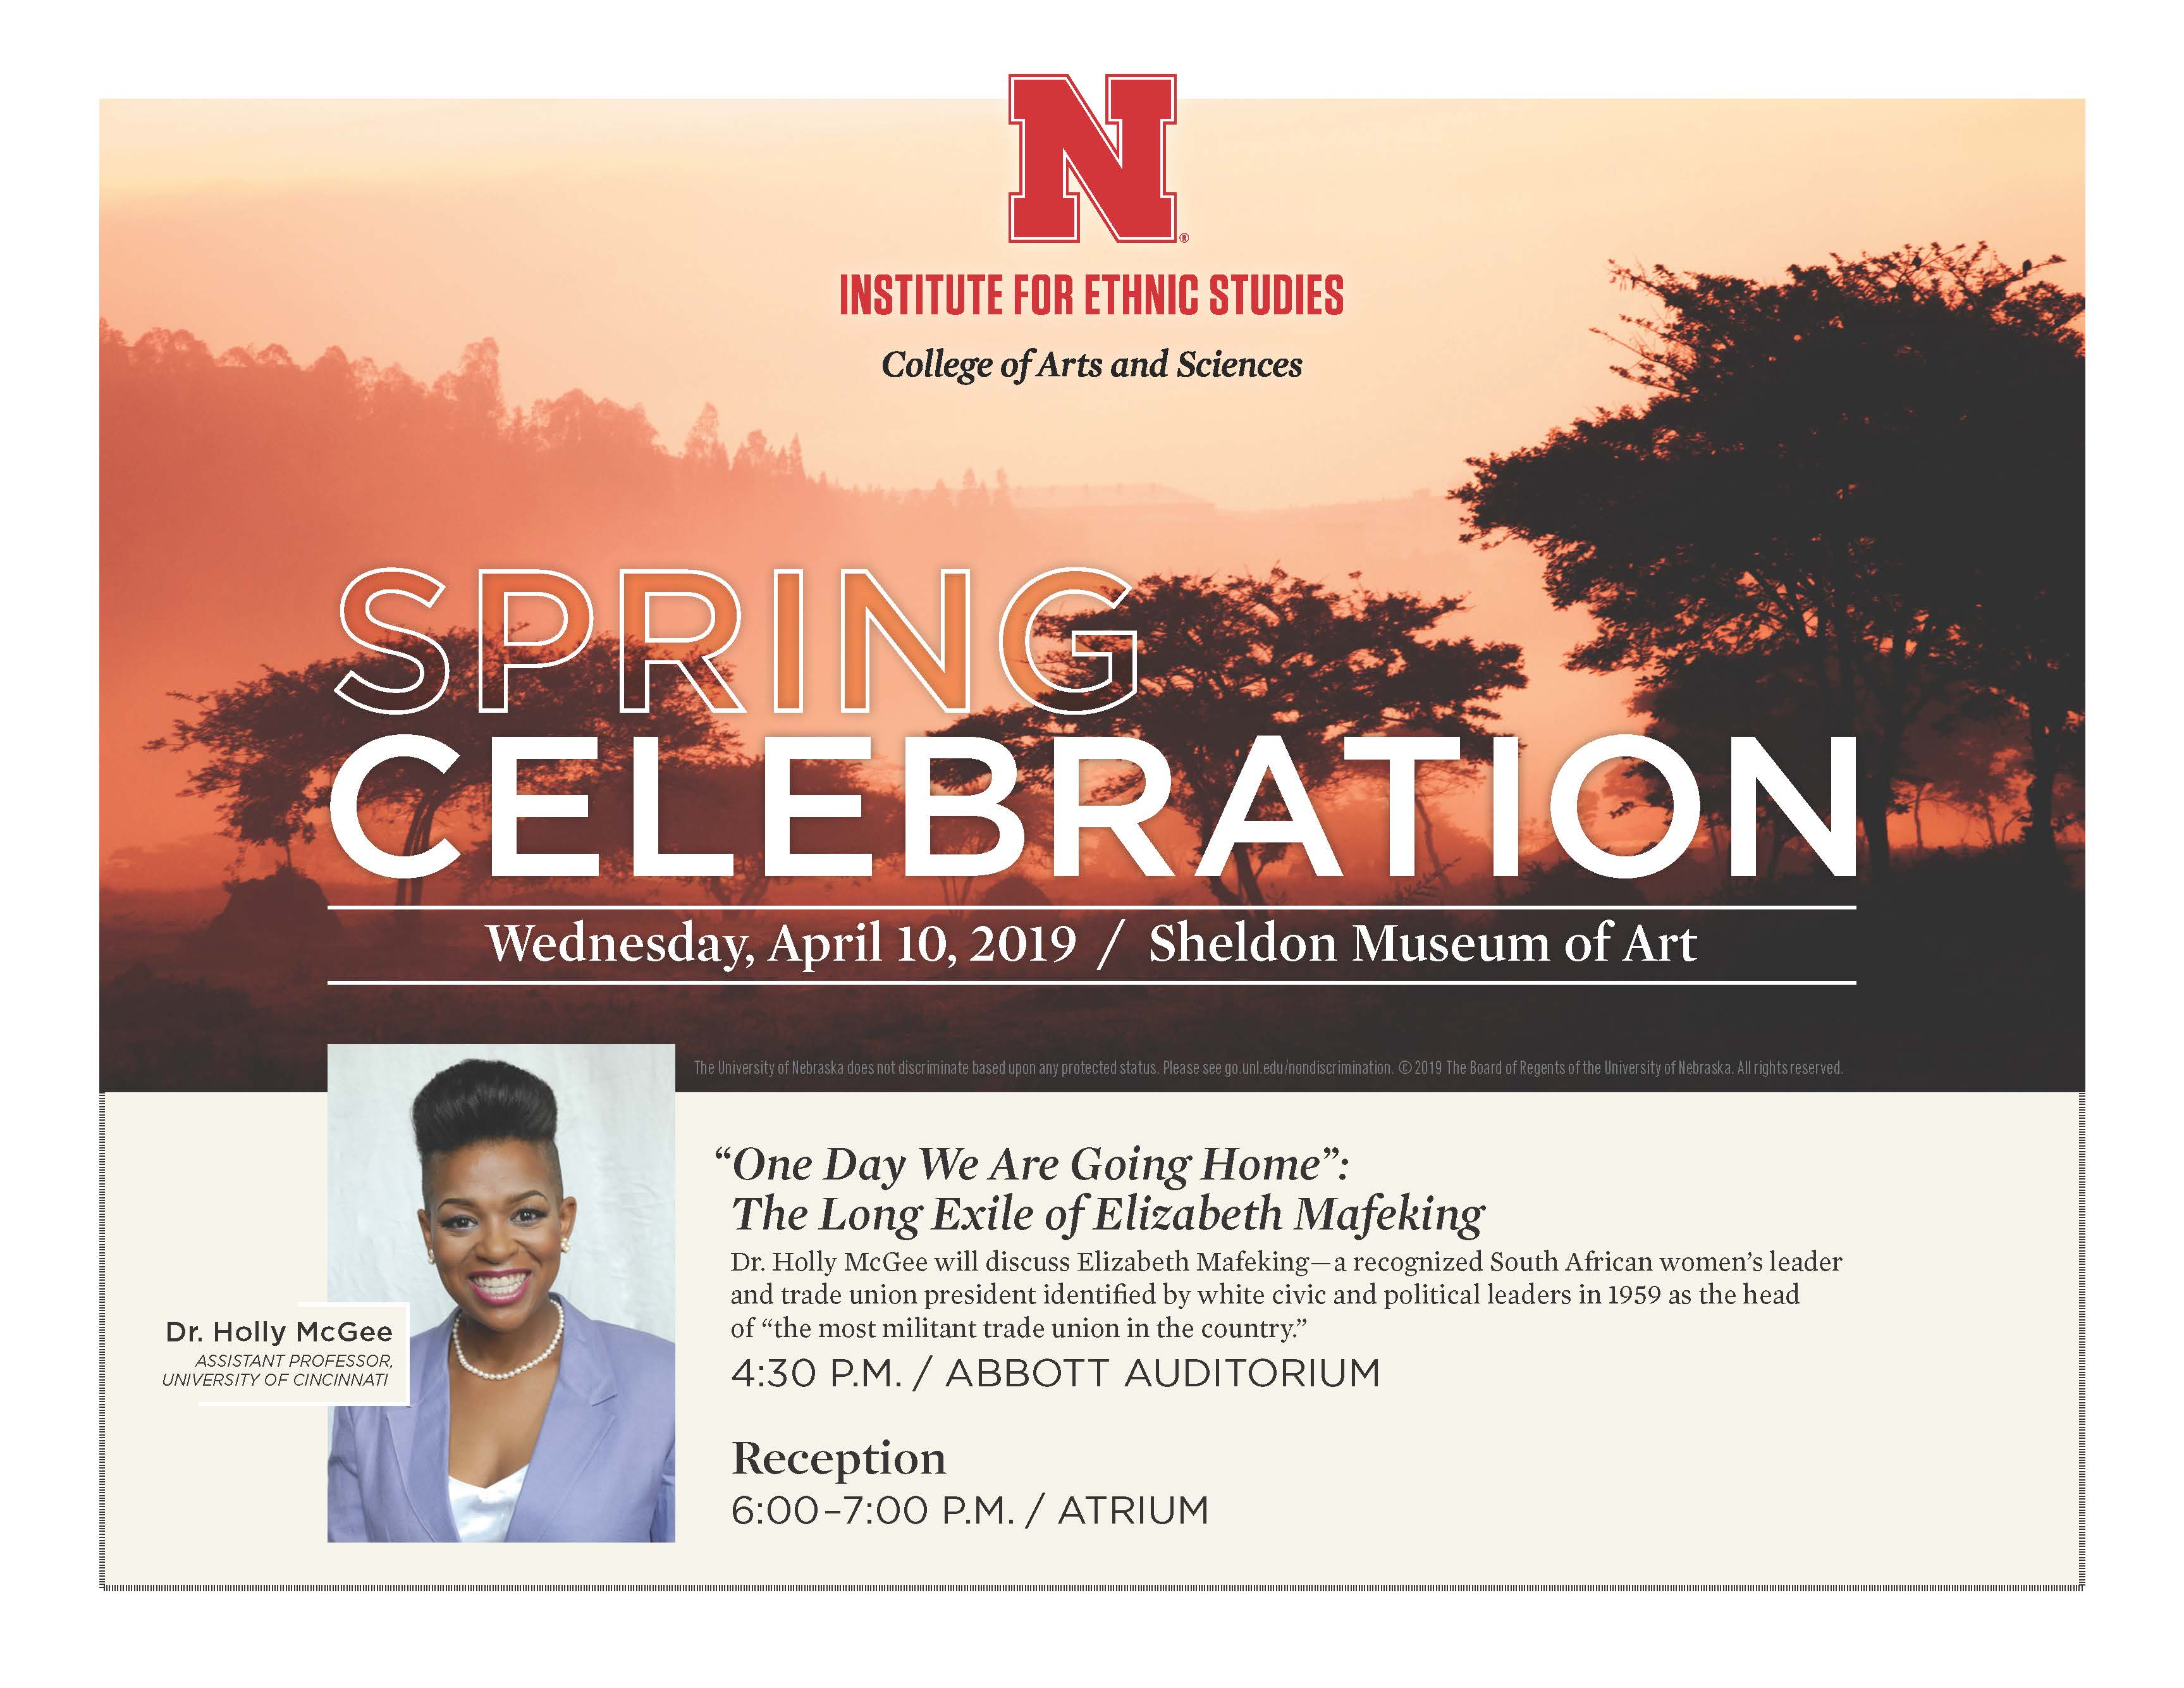 Ethnic Studies welcomes Dr. Holly McGee for the 2019 Spring Celebration